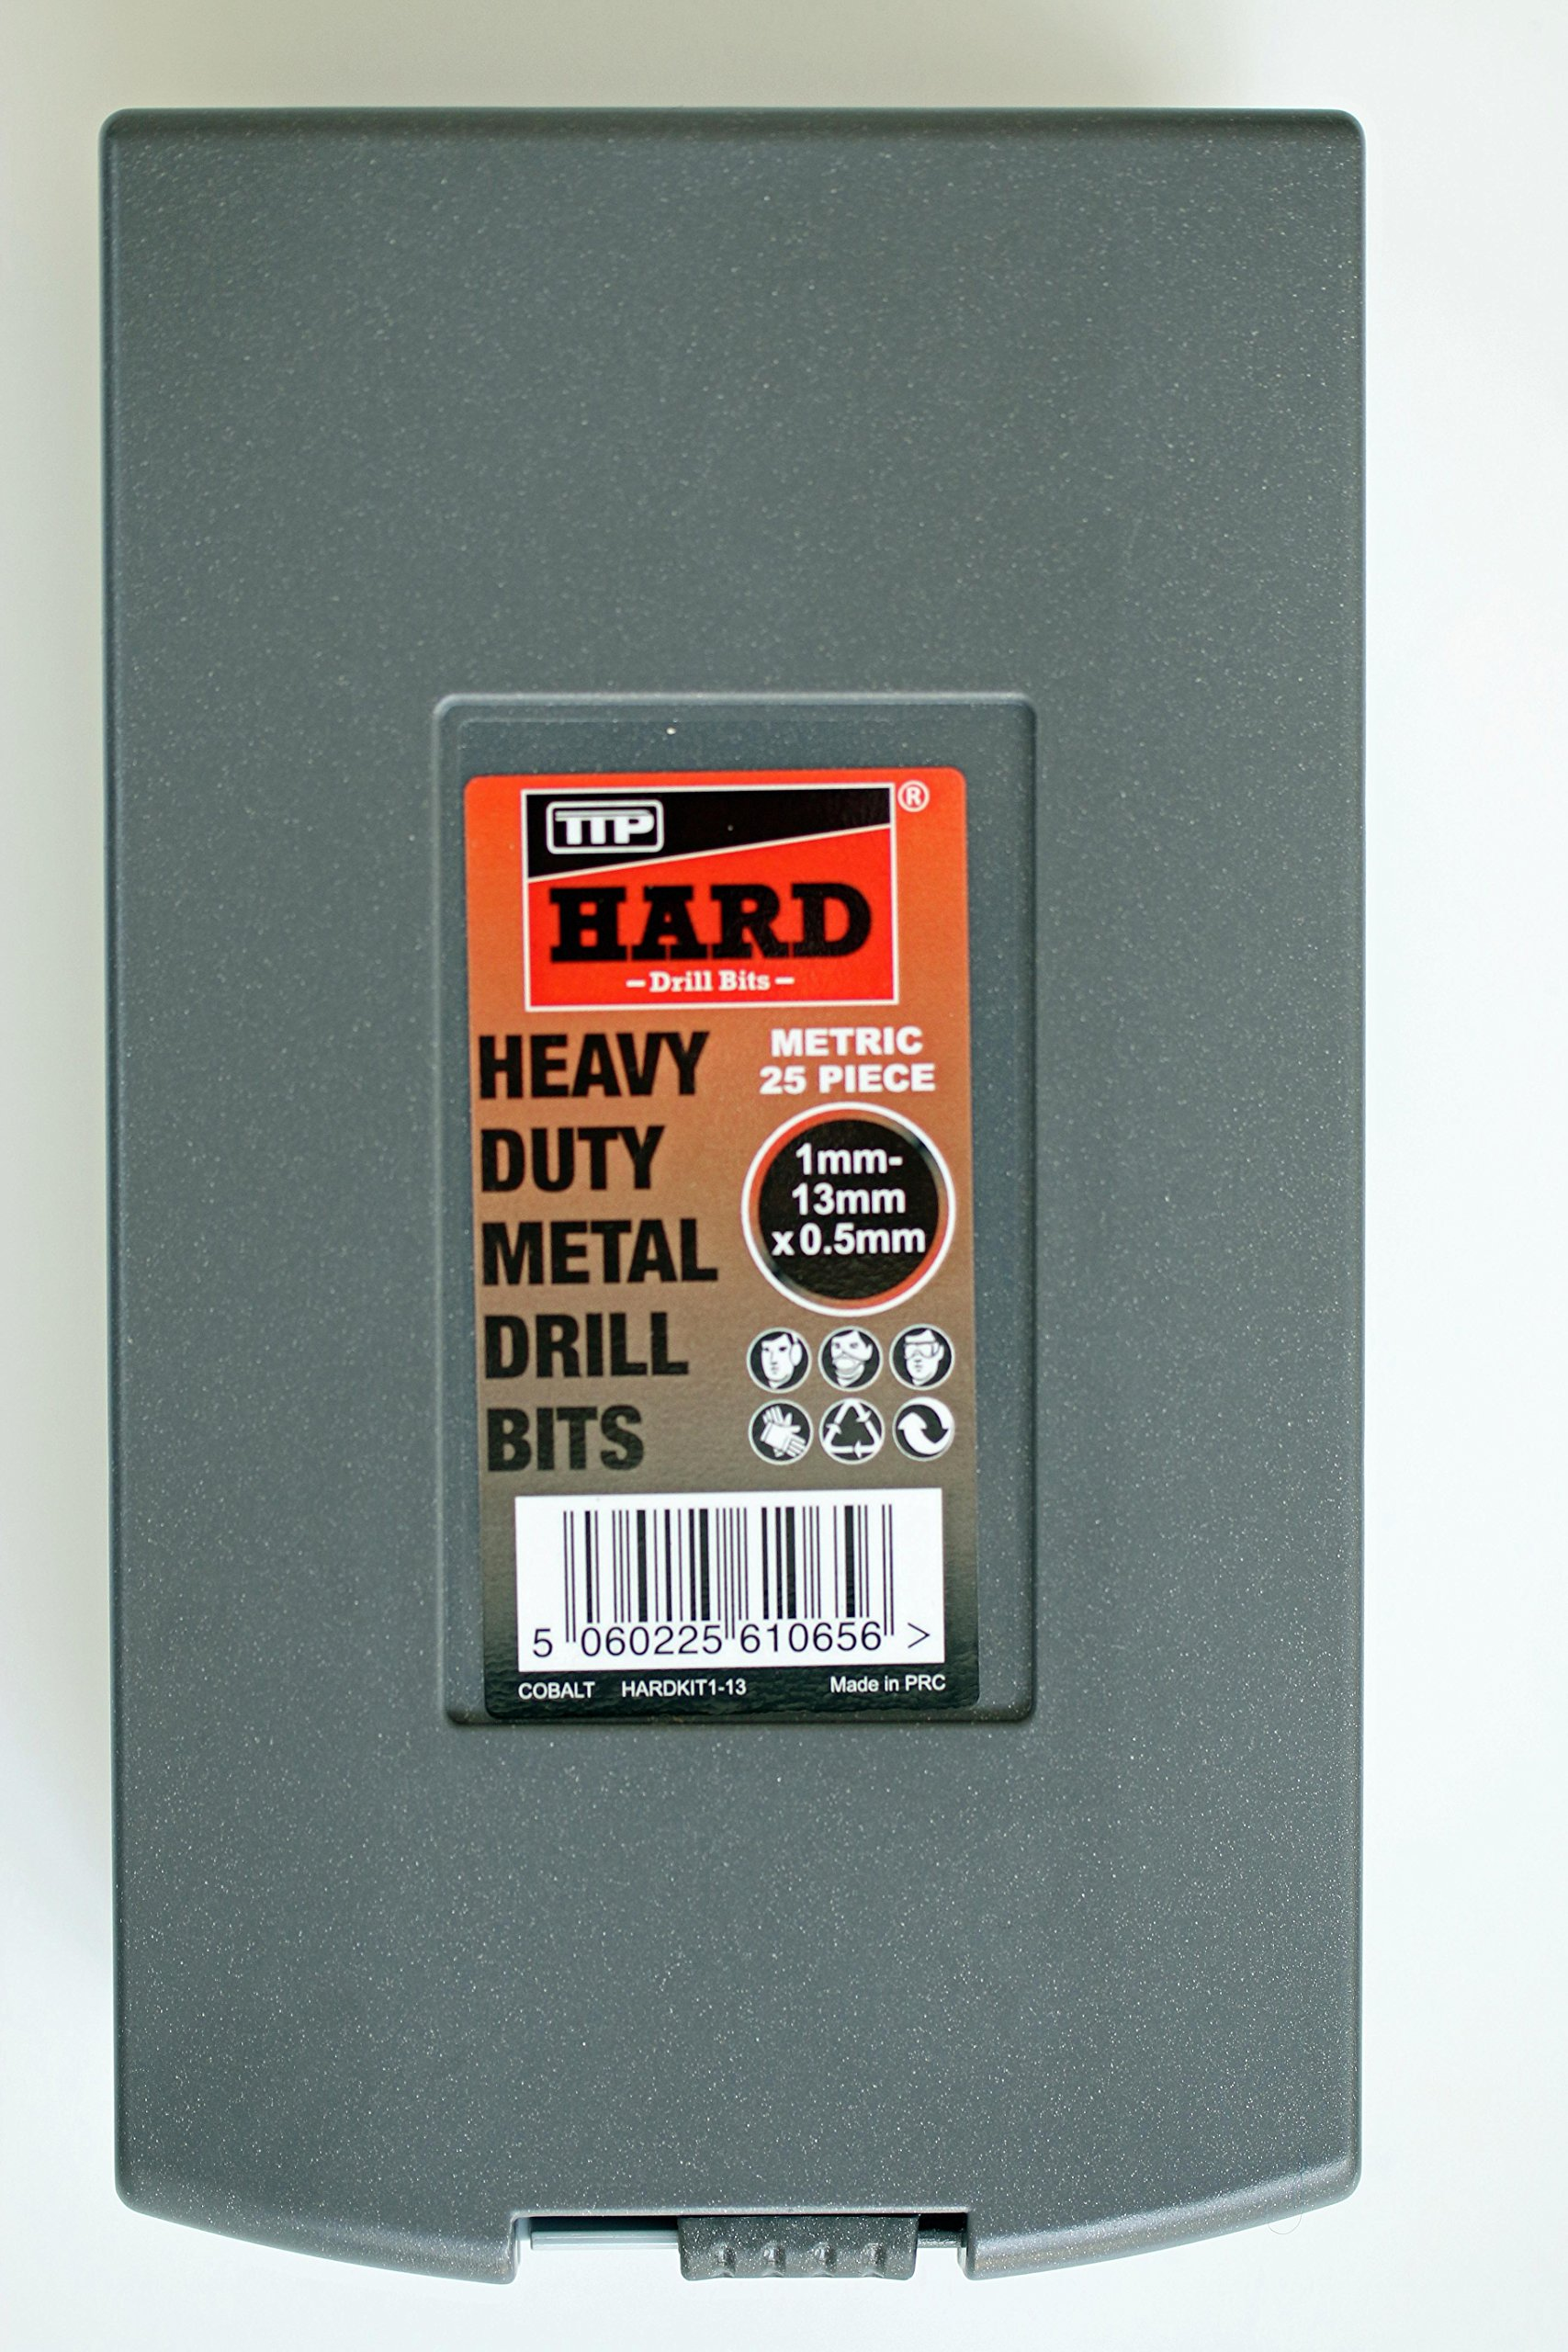 TTP HARD drills Set 1Mm To 13Mm X 0.5Mm (25 Drill Bits), Metric Cobalt Drill Set For Drilling Harder Metals Stainless Chrome Aluminum Cast Iron